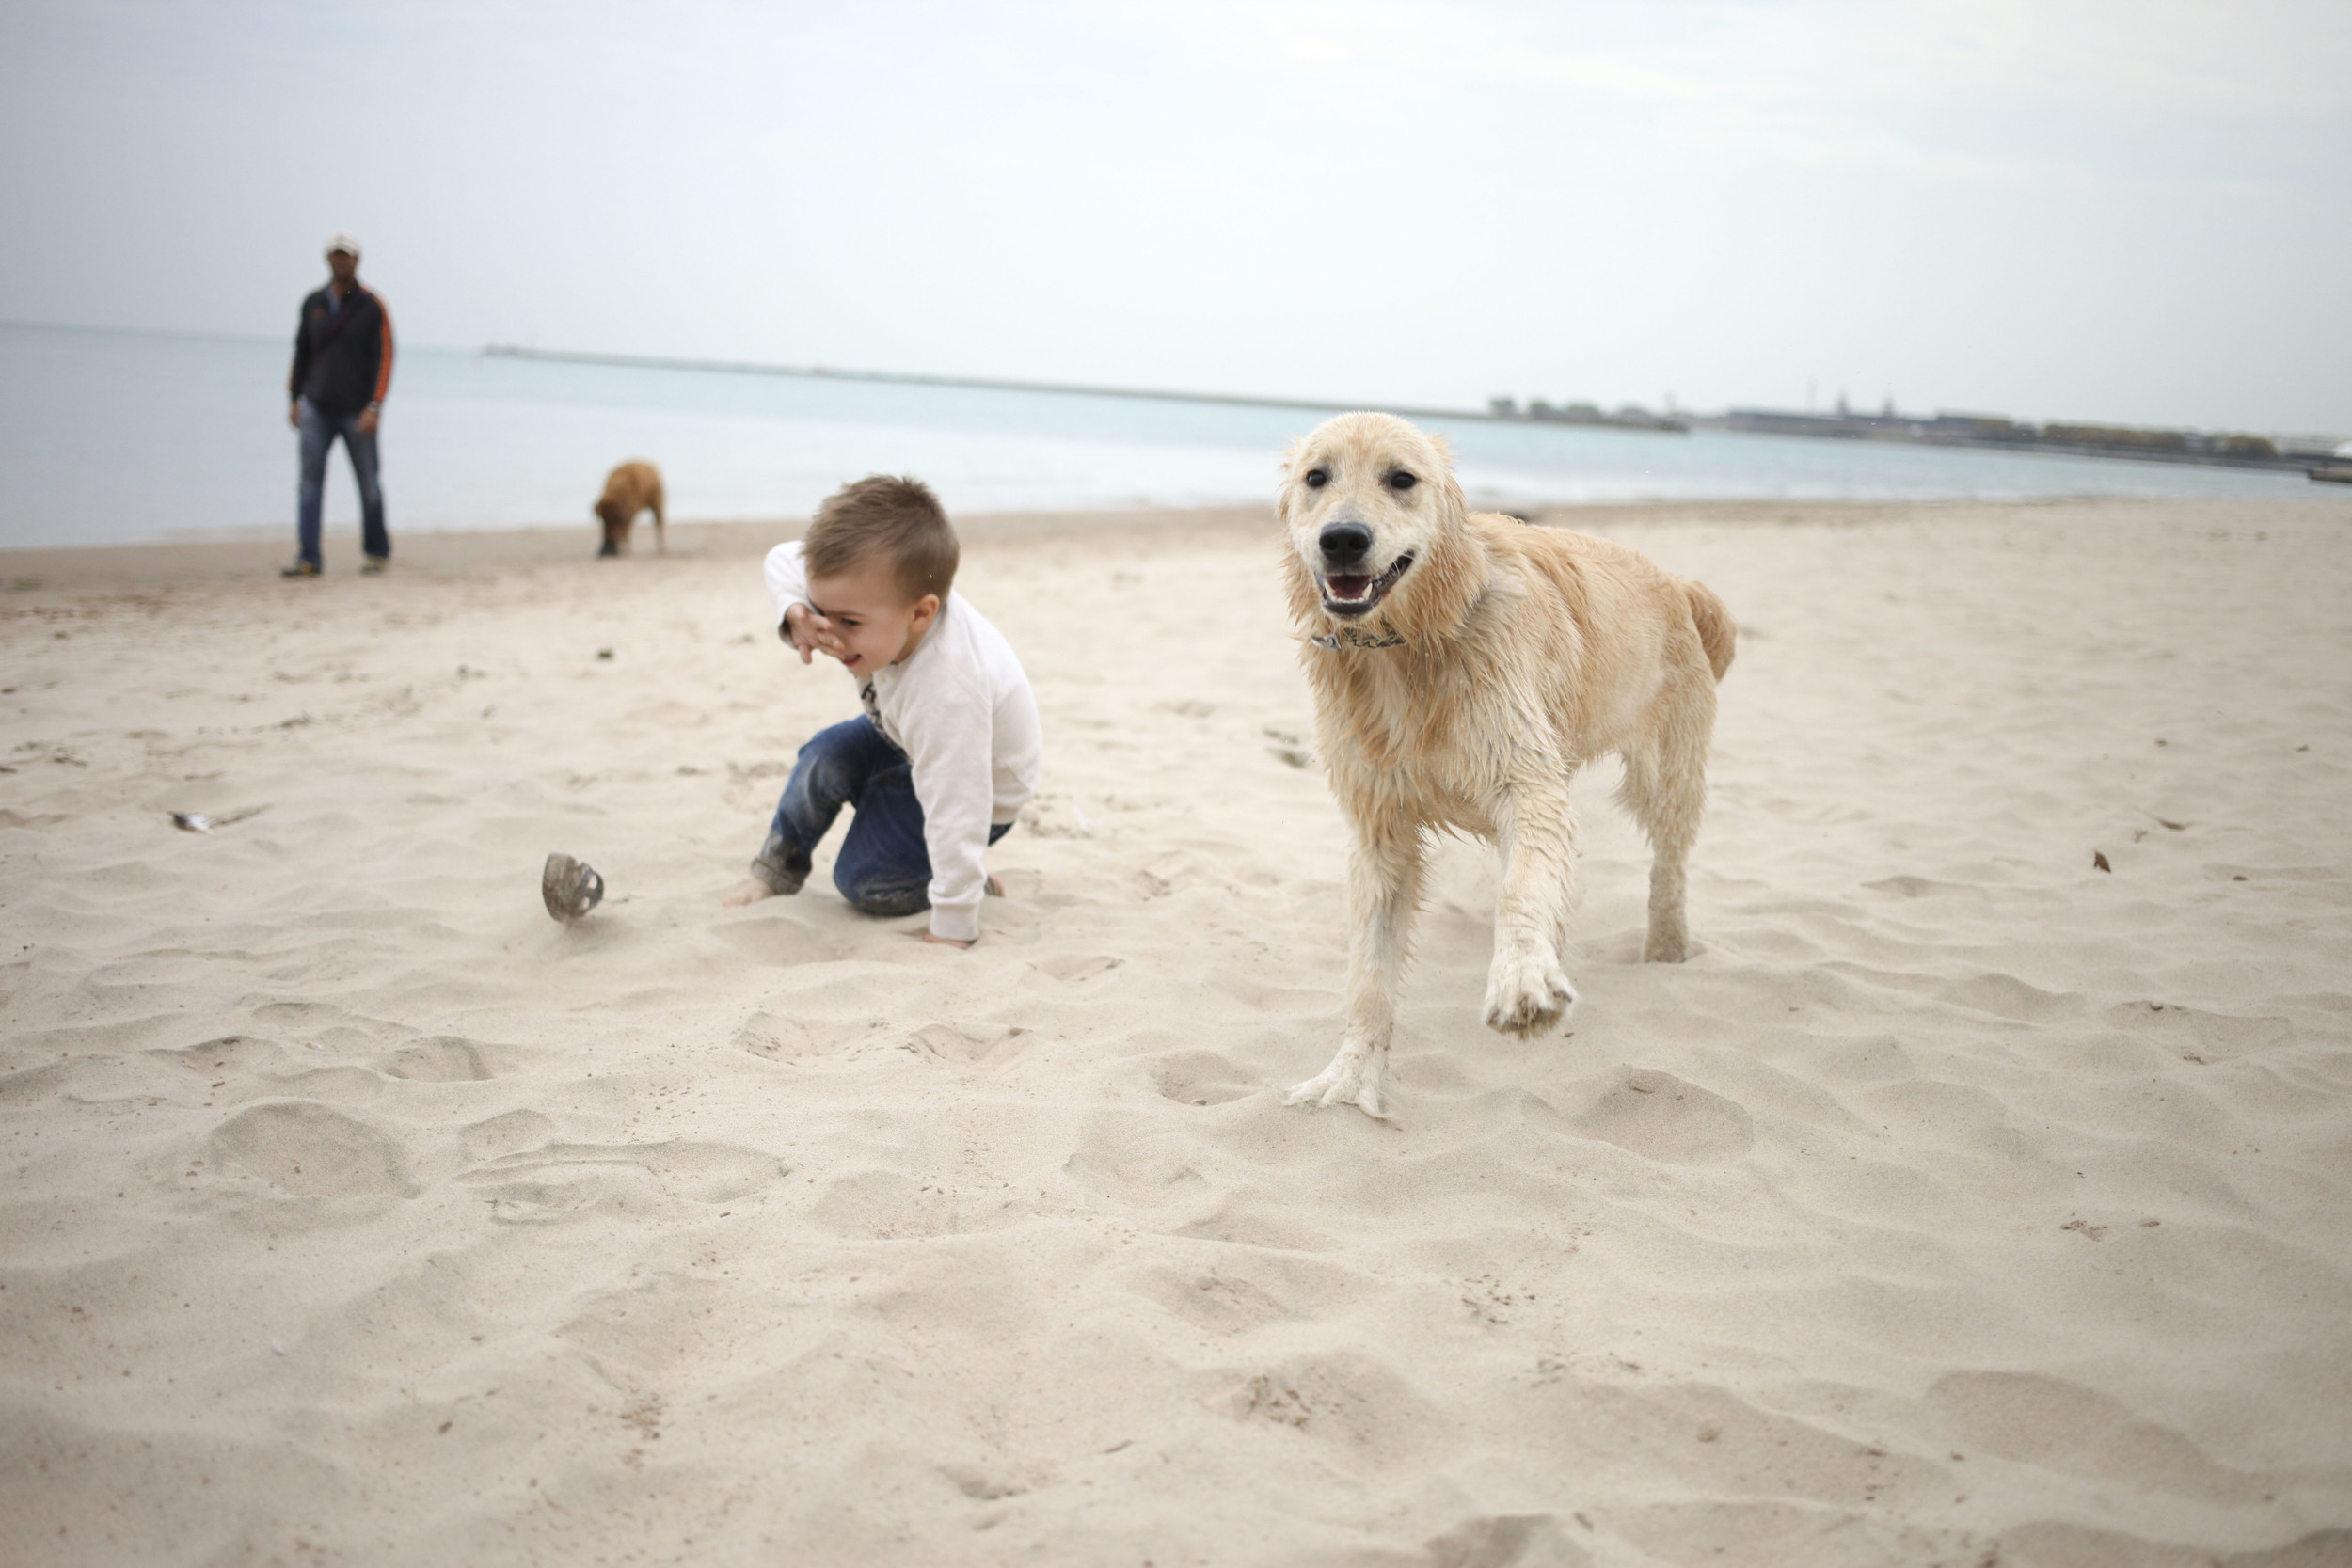 Jude loves Dogs. This dog loved him and his shoe right back.